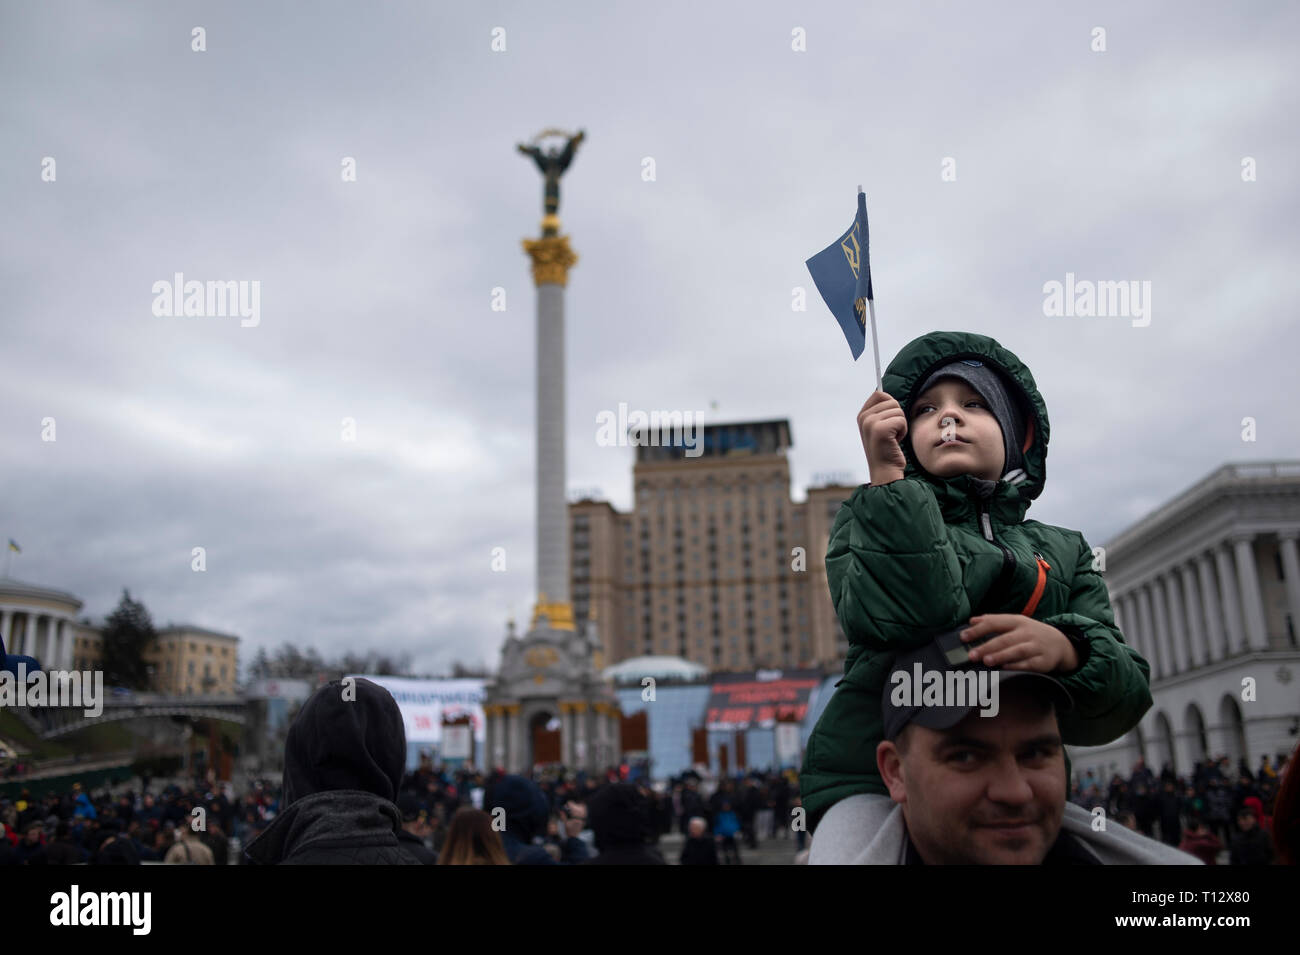 A boy seen waving a flag as he watches on during the demonstration.  Protesters gathered in Maidan Square then marched to the Presidential Administration building to call on President Petro Poroshenko to bring corrupt governmental officials to justice. With the Ukrainian Elections being held at the end of March the political tensions run very high. Stock Photo